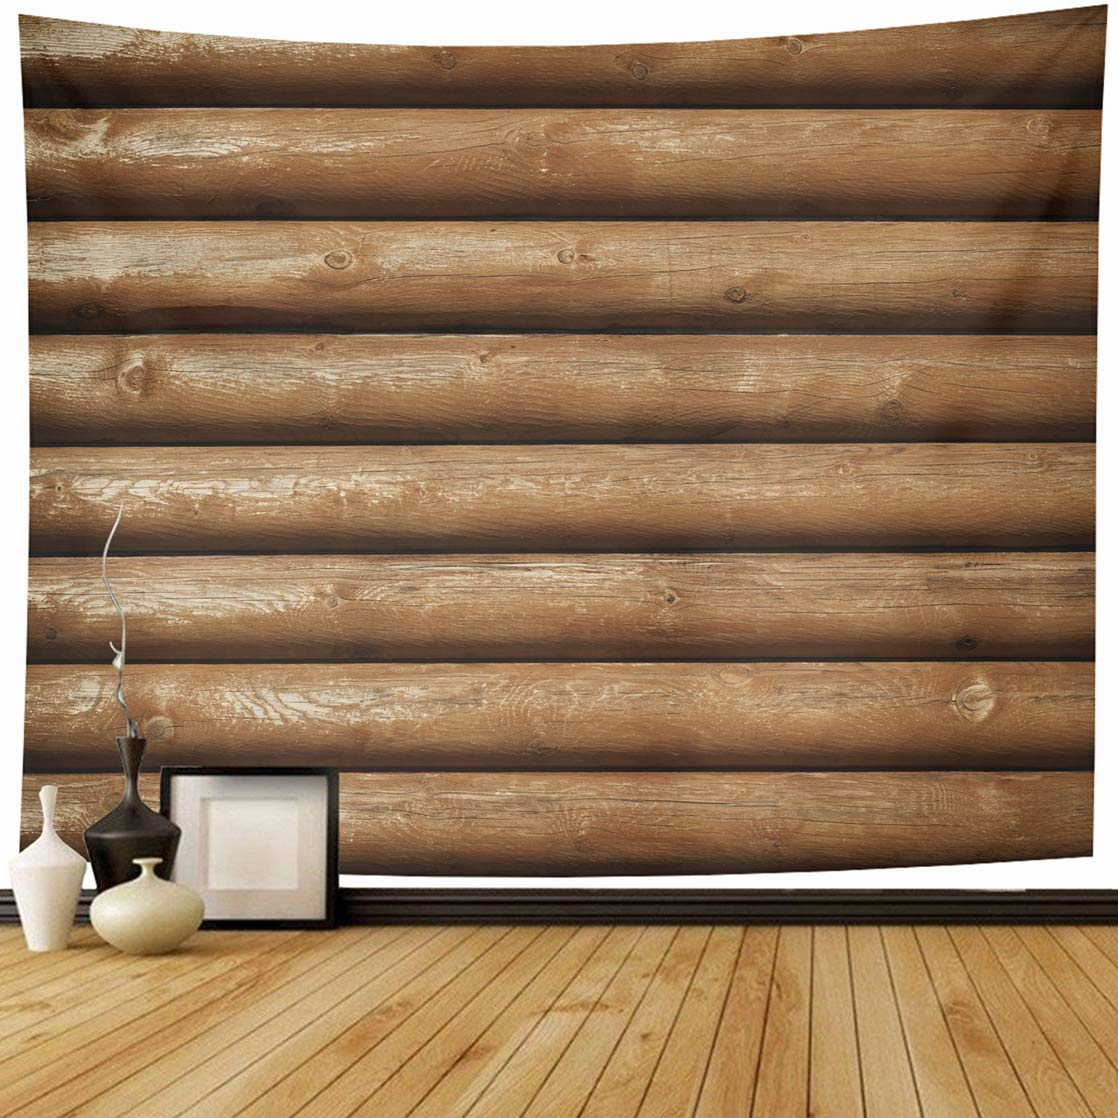 AlliuCoo Tapestry Wall Hanging 60 x 50 Inches Brown Cabin Wooden Logs Wall Orange Wood Abstract Home Wall Decor Tapestries for Bedroom Living Room Dorm